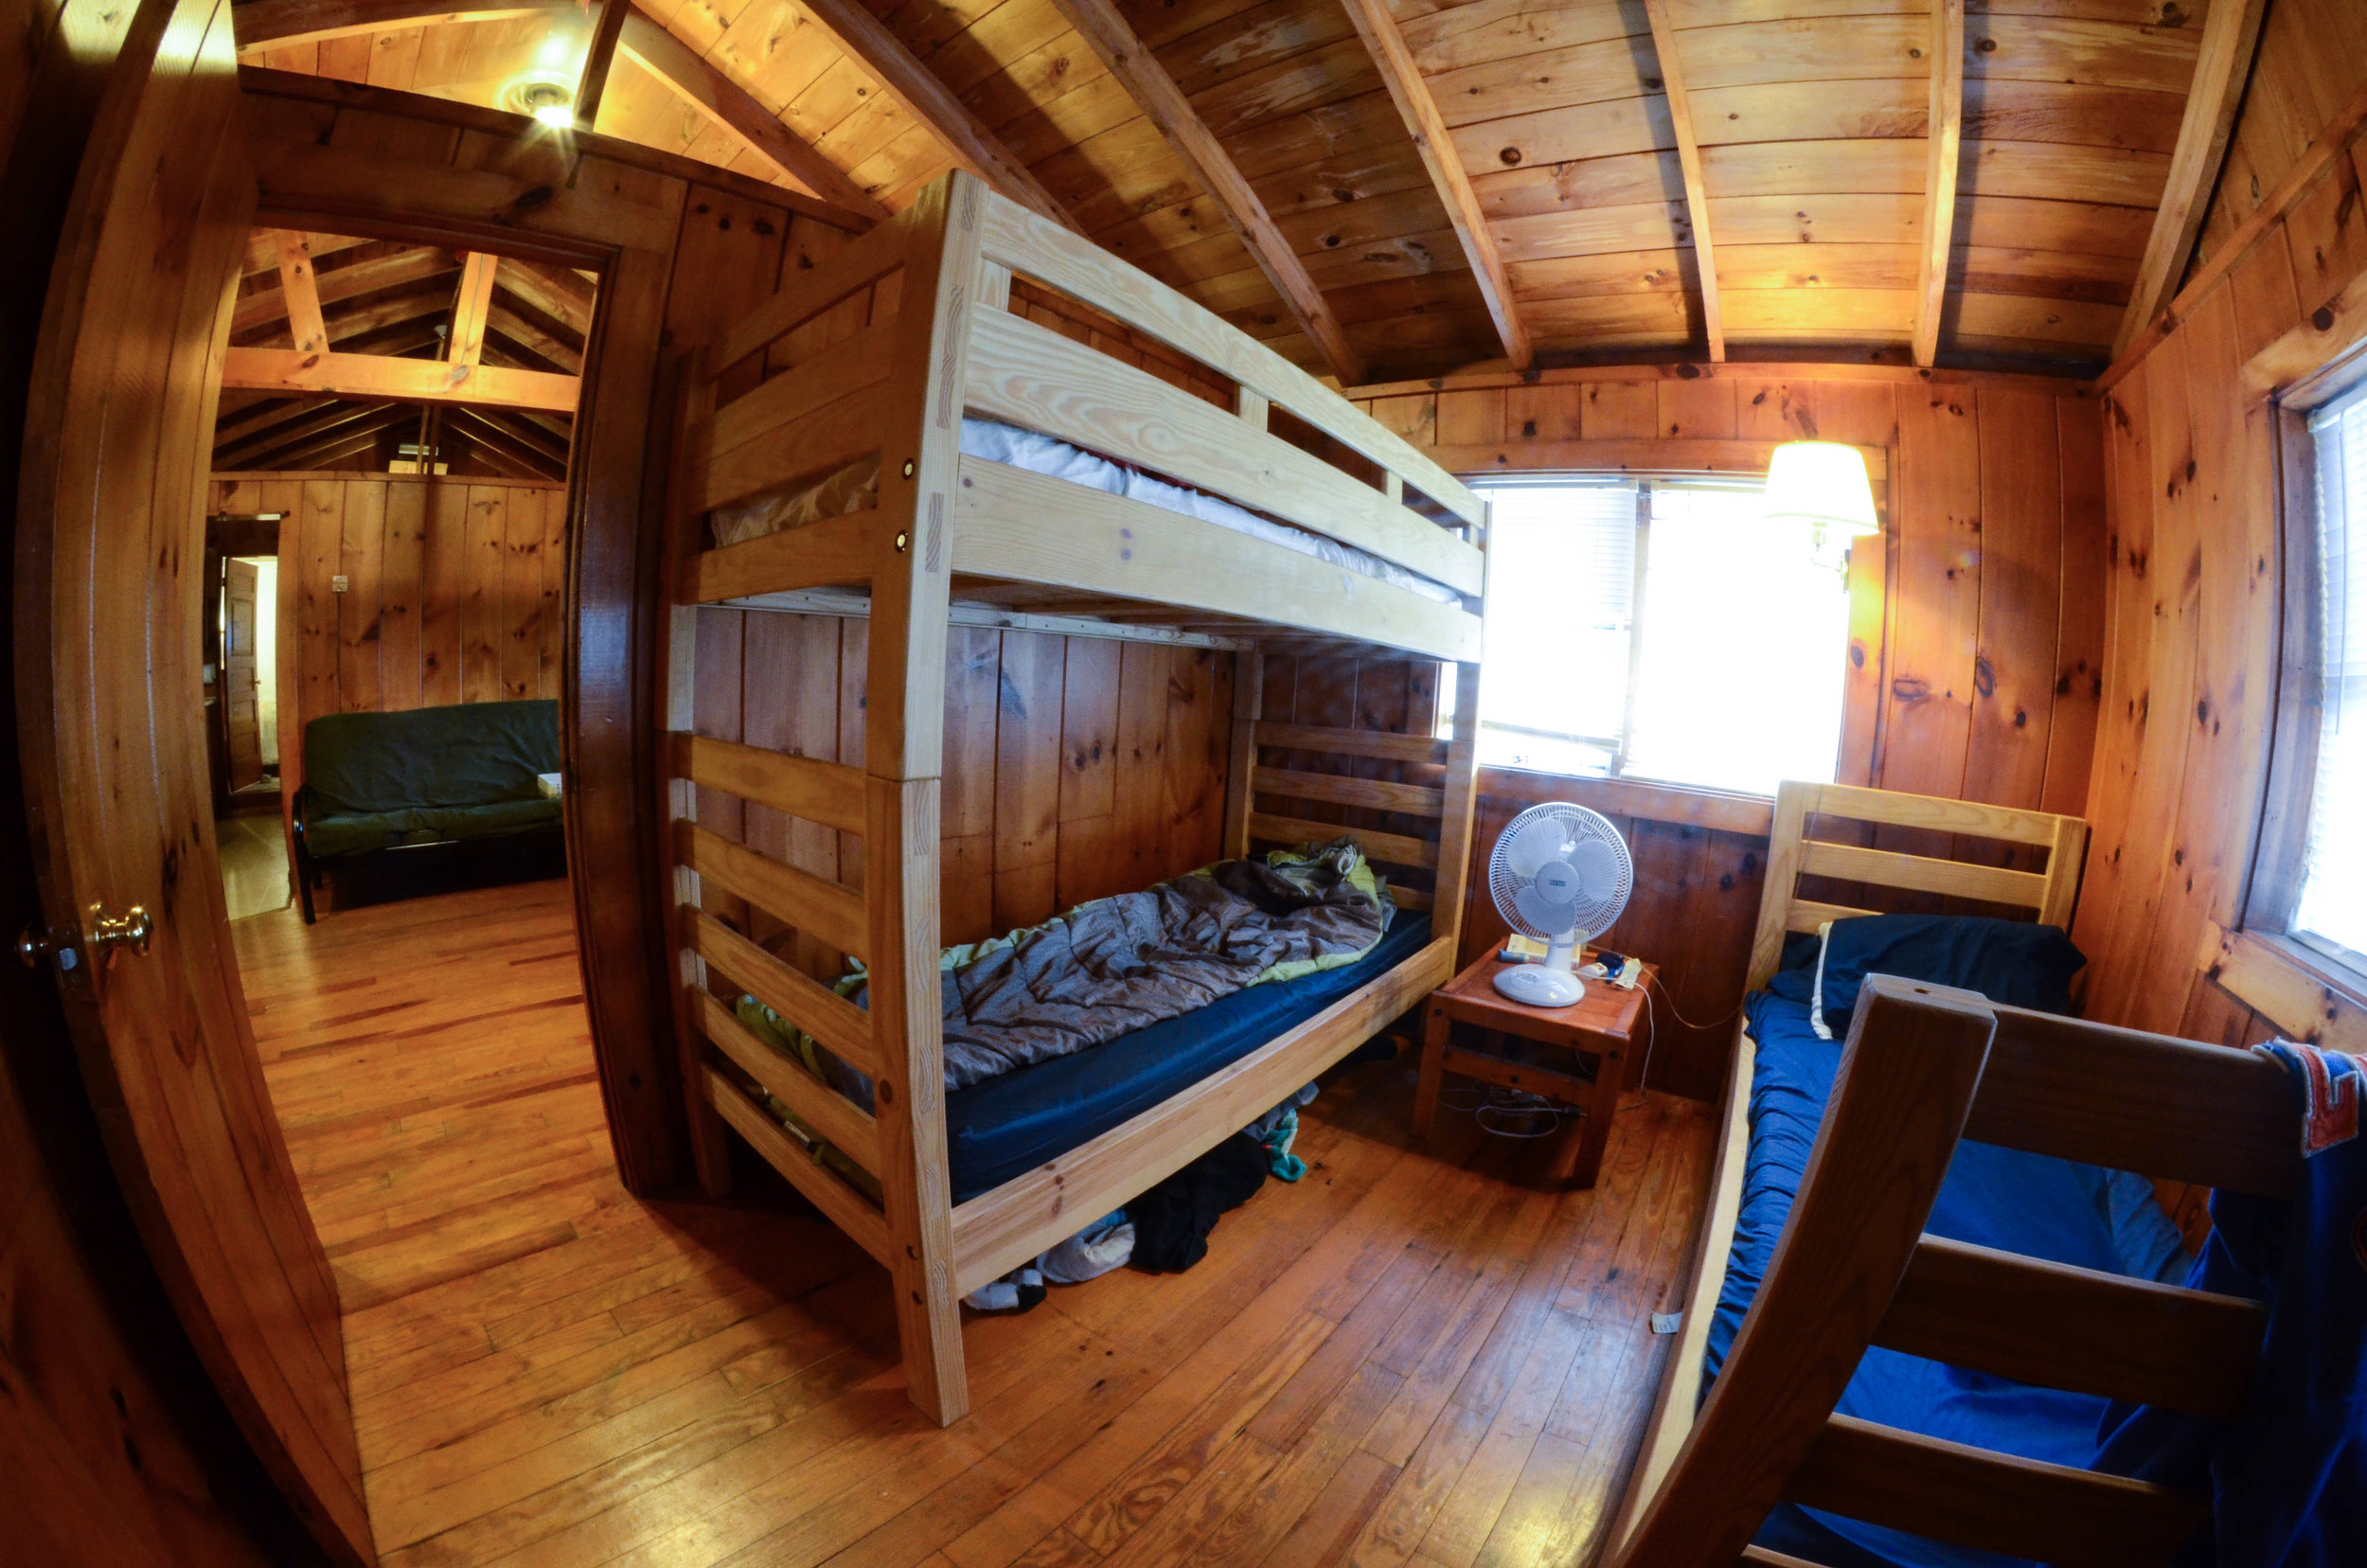 Summer Camp Cabin Interior Bunk Beds